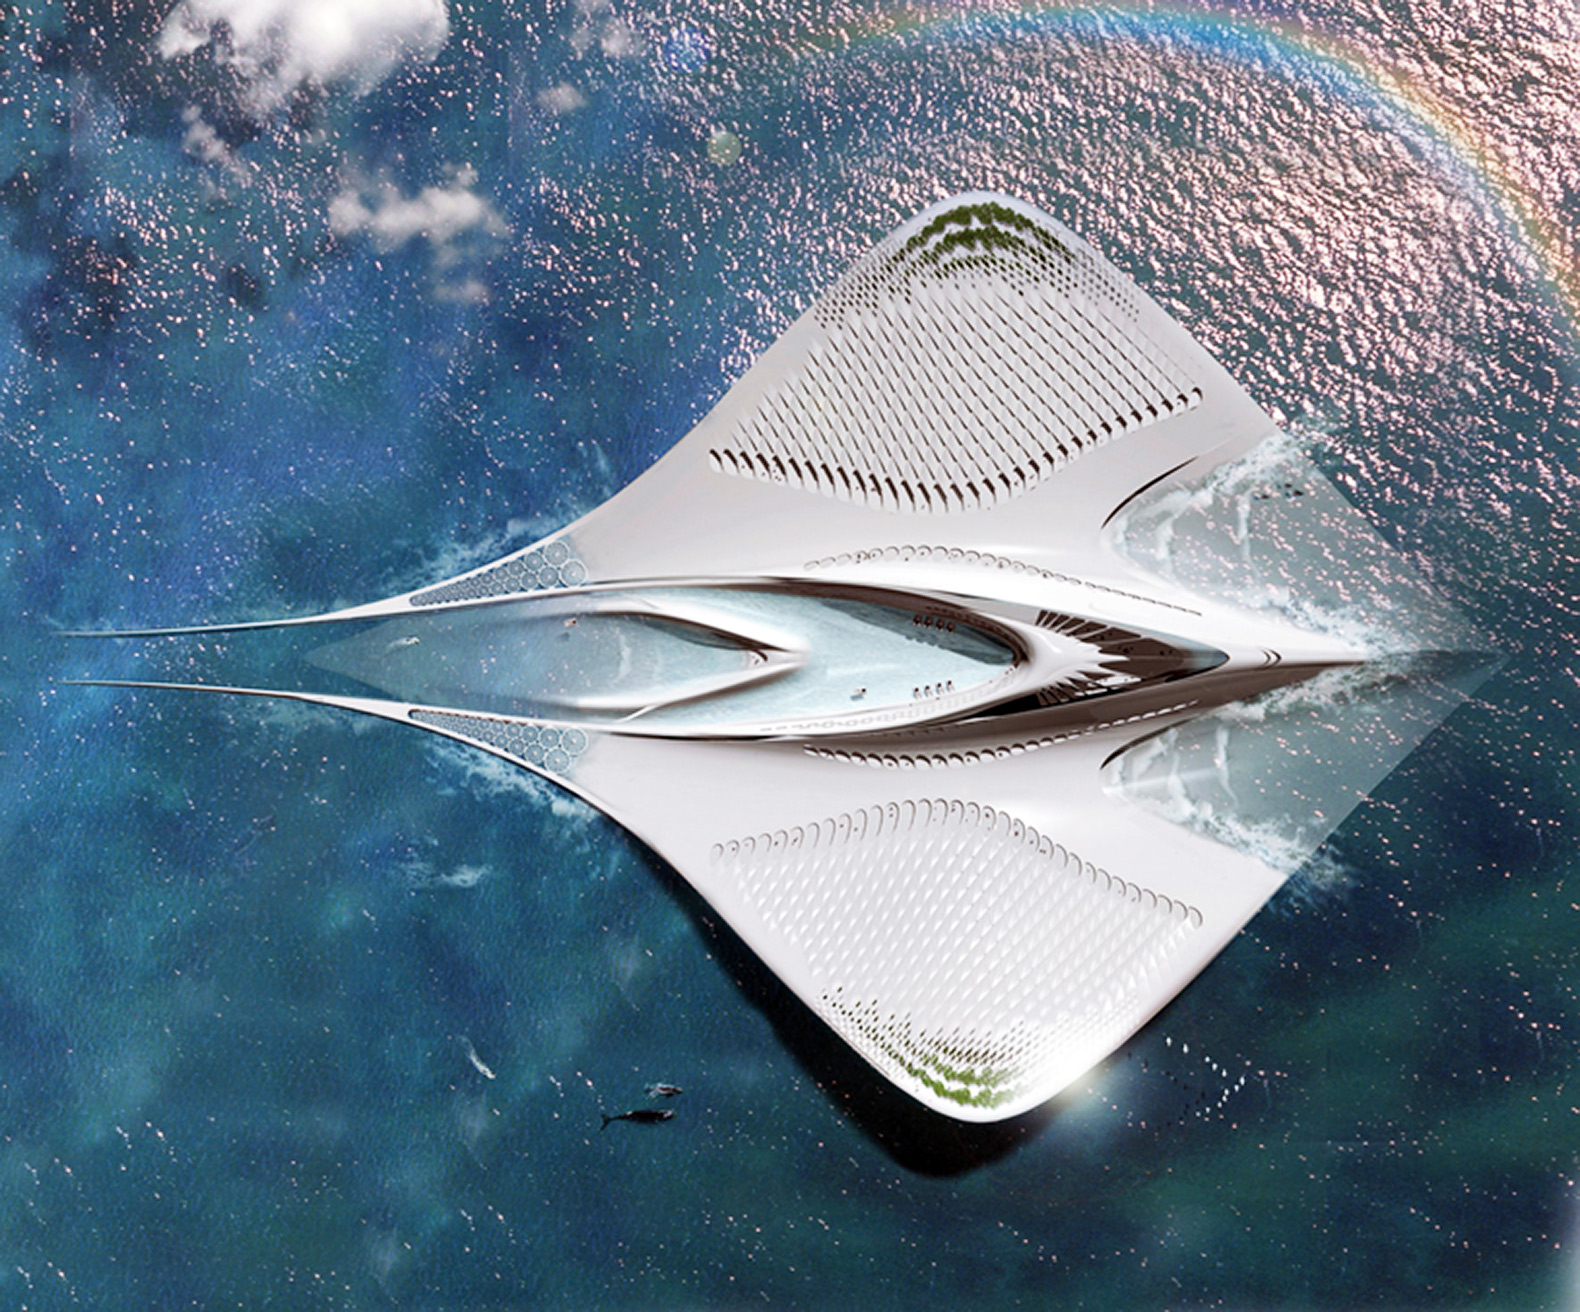 Fascinating floating city shaped like a manta ray would be 100% self-sustaining